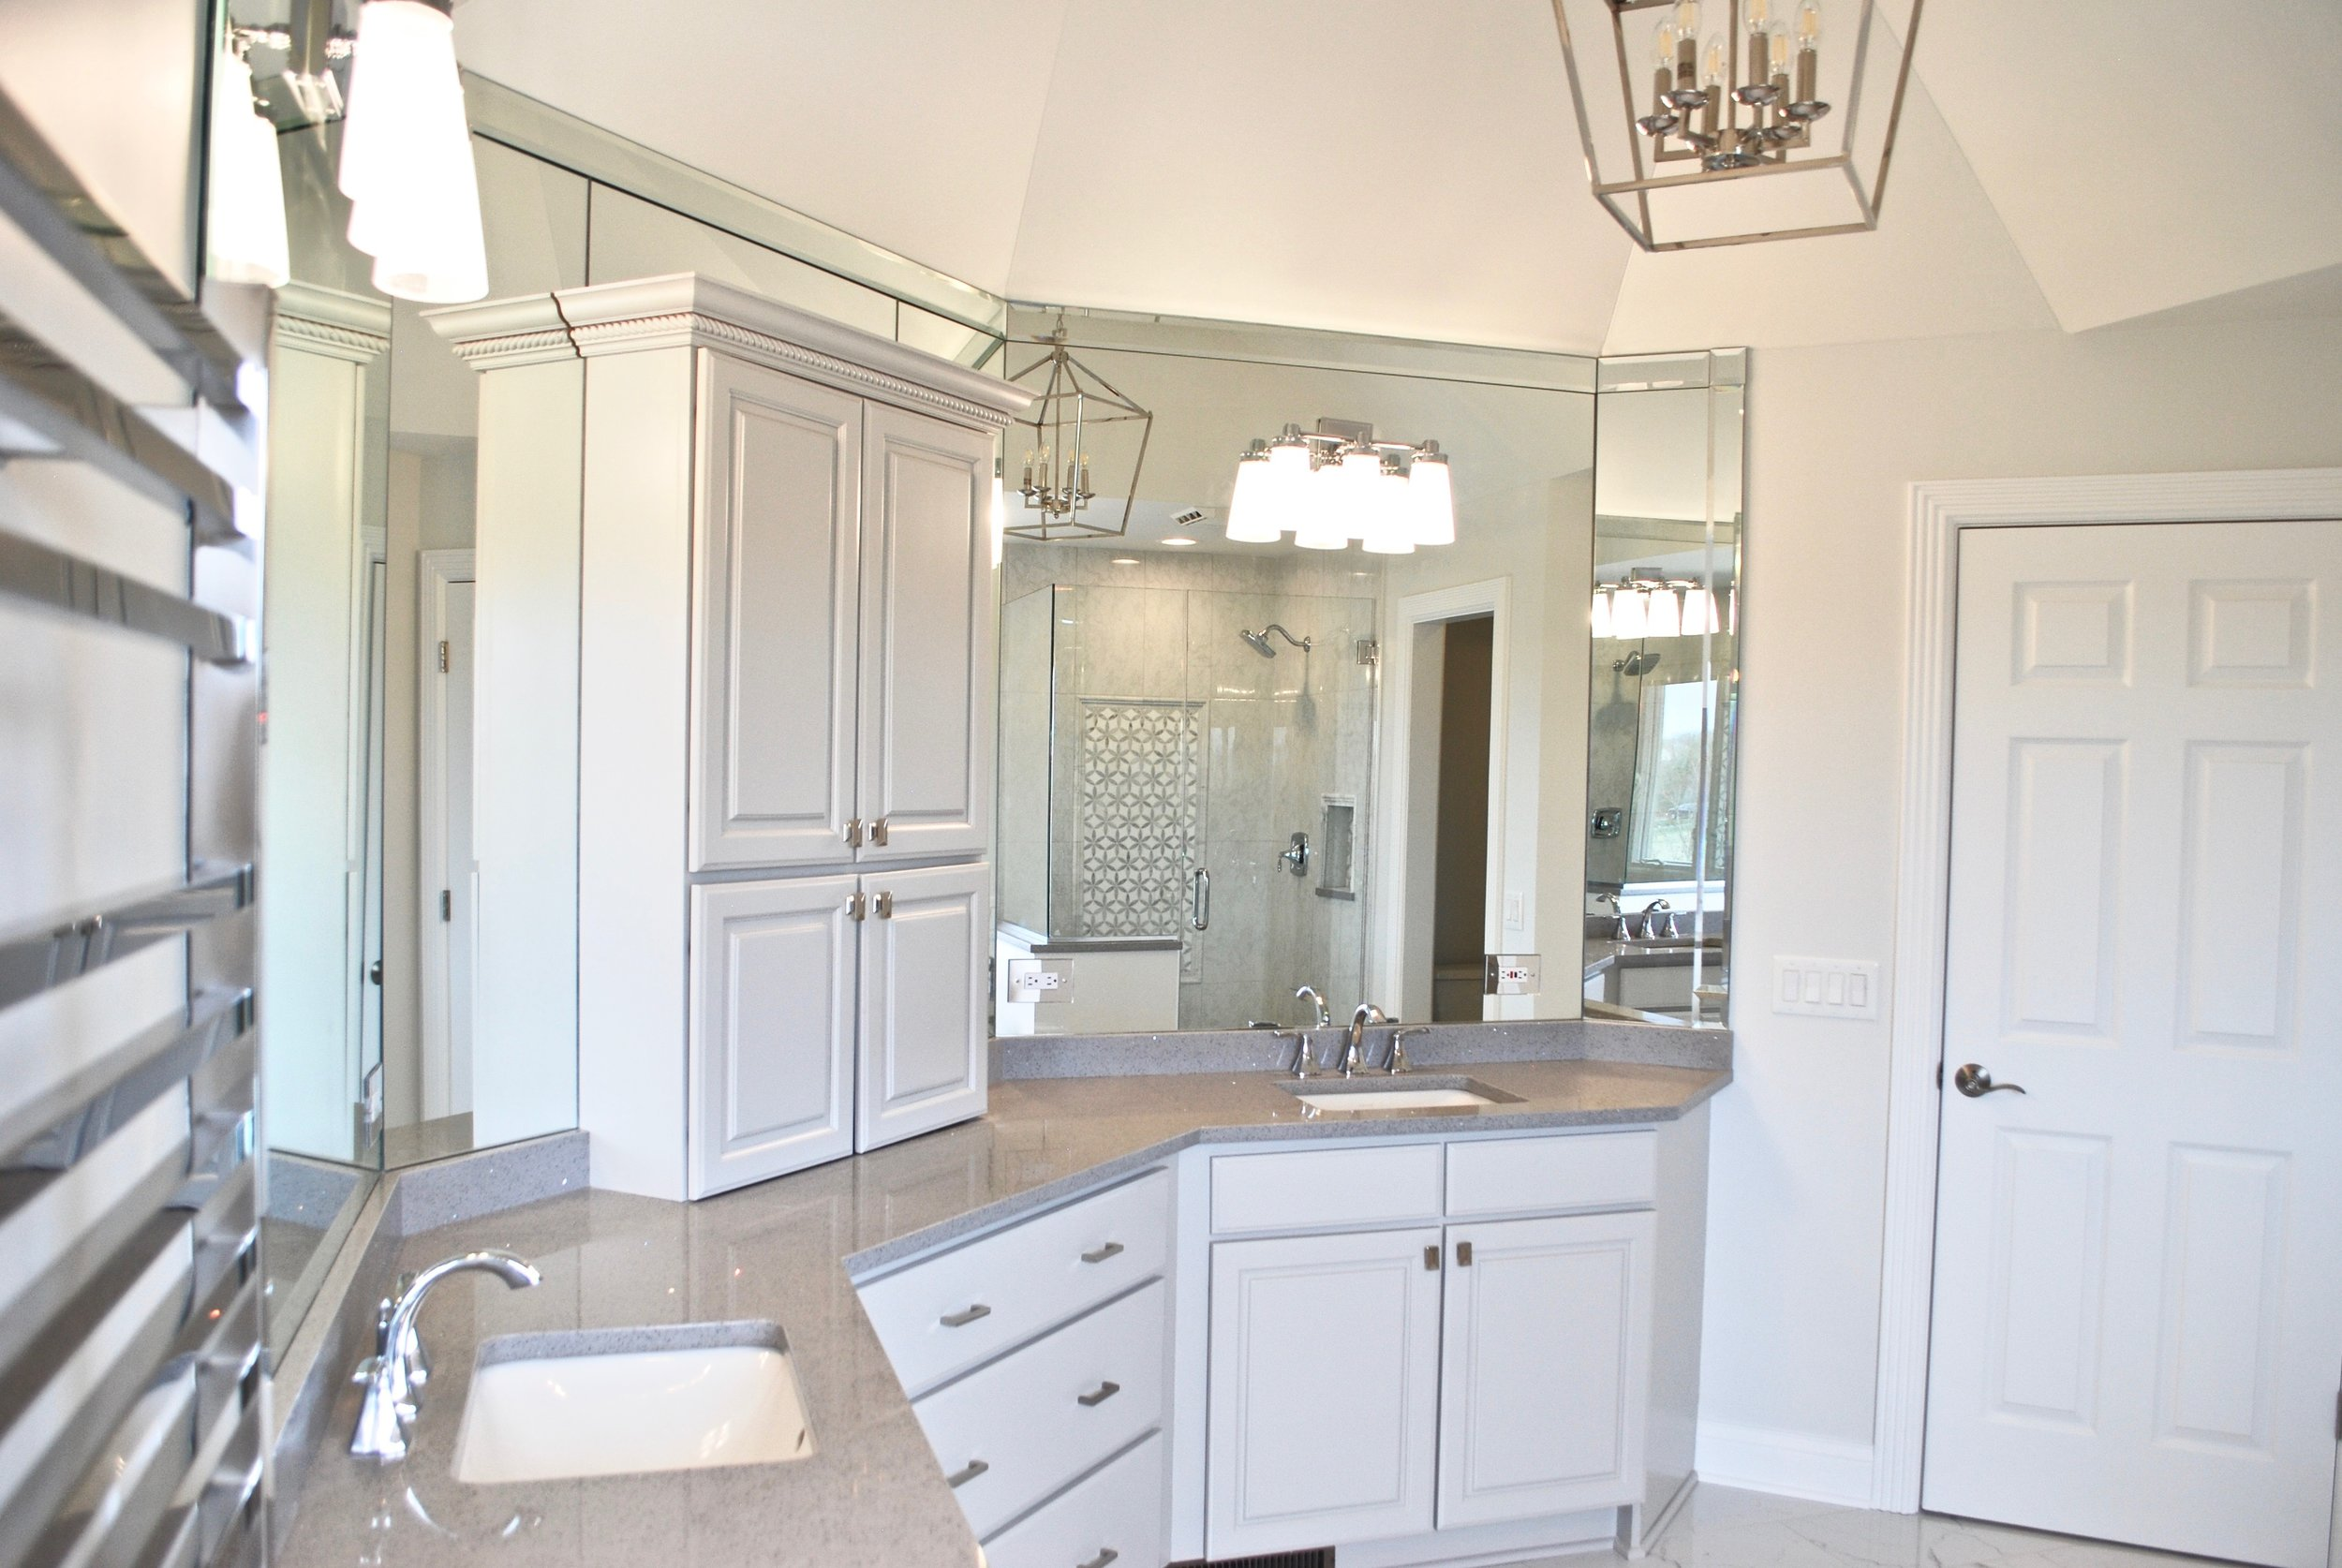 Geneva IL. Bathroom Remodeling, Renovations & Updating. Cabinet Painting, Shower Replacement & Tub Deck Removal. Update Your Home for Sale or For Your Enjoyment. Remodeling Contractor Geneva IL.